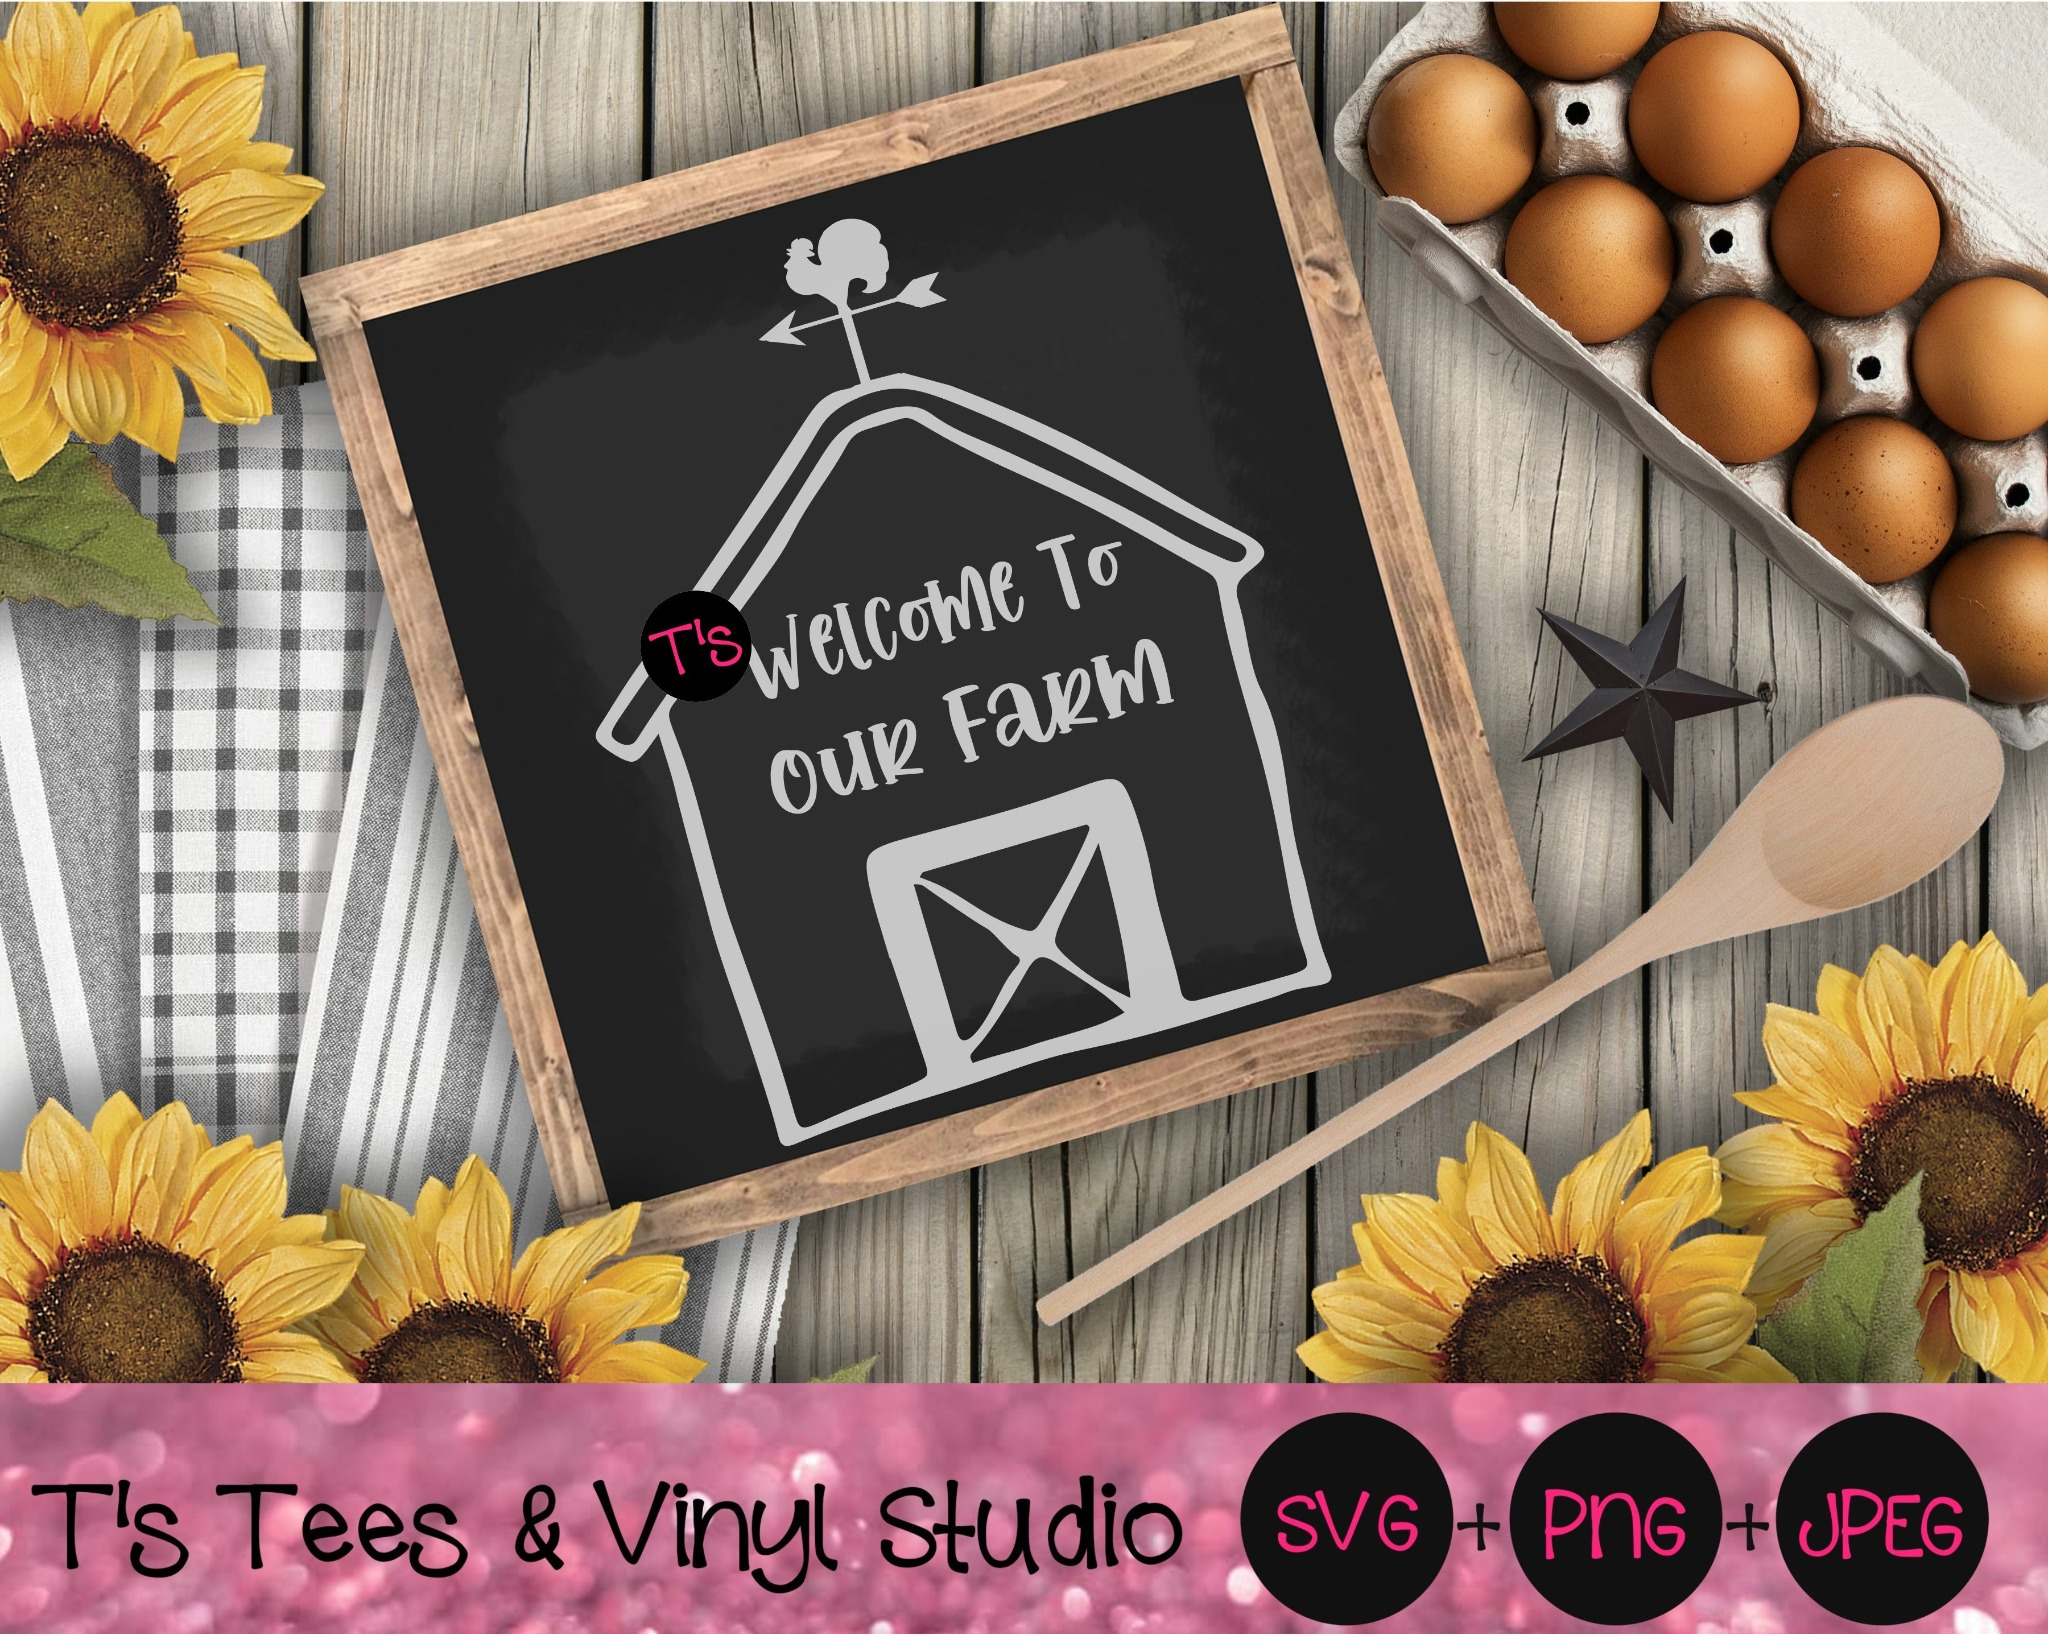 Welcome Svg, Farm Svg, Welcome To Our Farm Svg, Farm Life, Barn, Weather Vane, Wind Vane, Rooster Cr